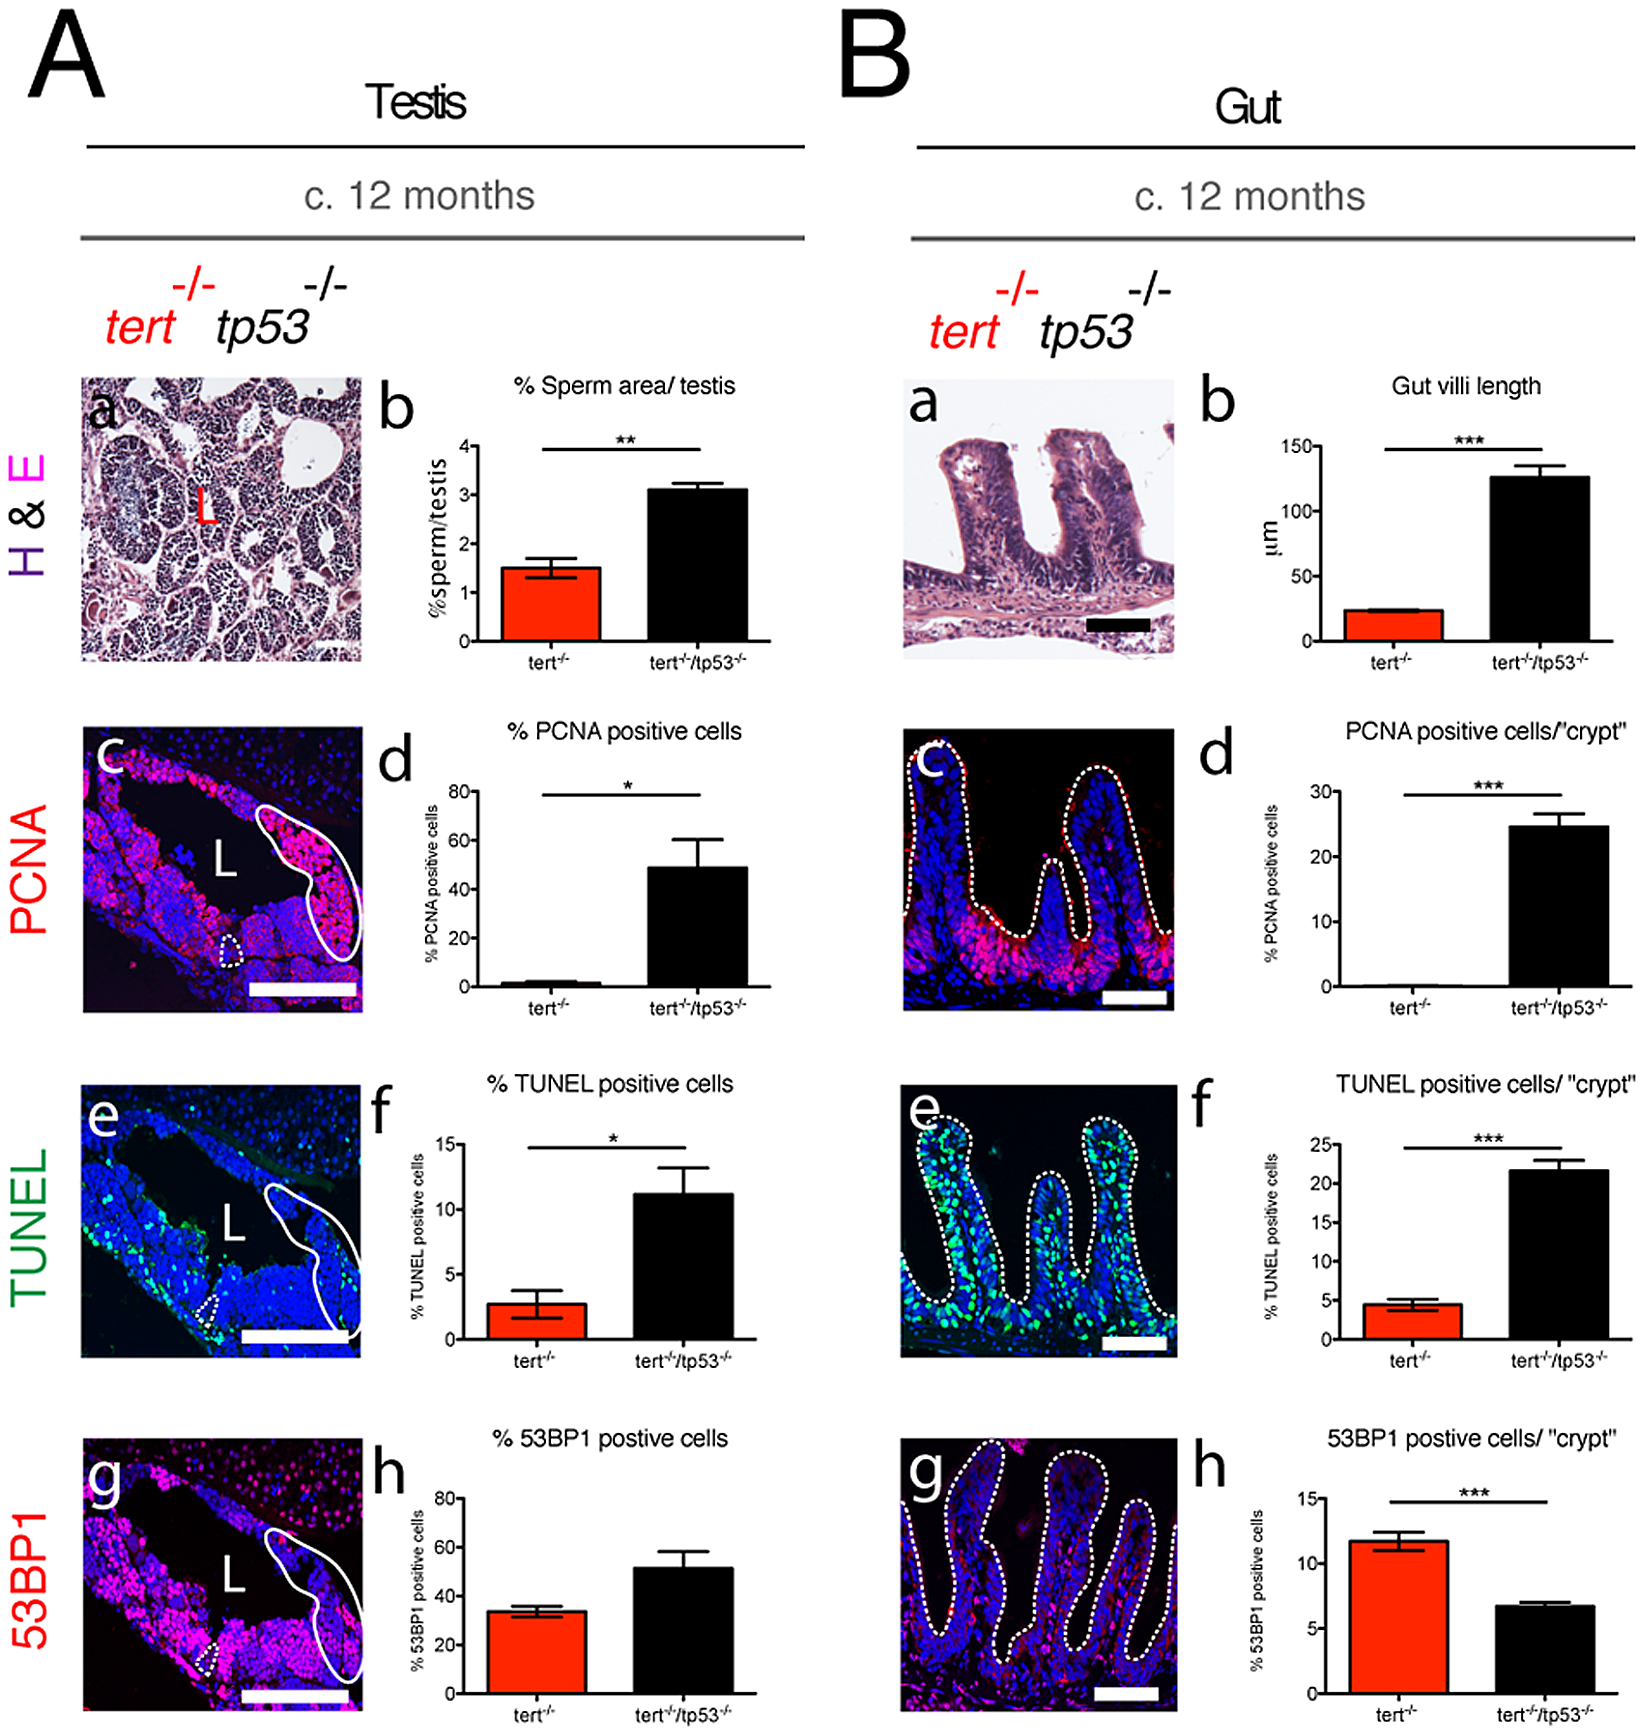 Elimination of <i>tp53</i> function partially rescues <i>tert<sup>−/−</sup></i> degeneration in proliferative tissues.